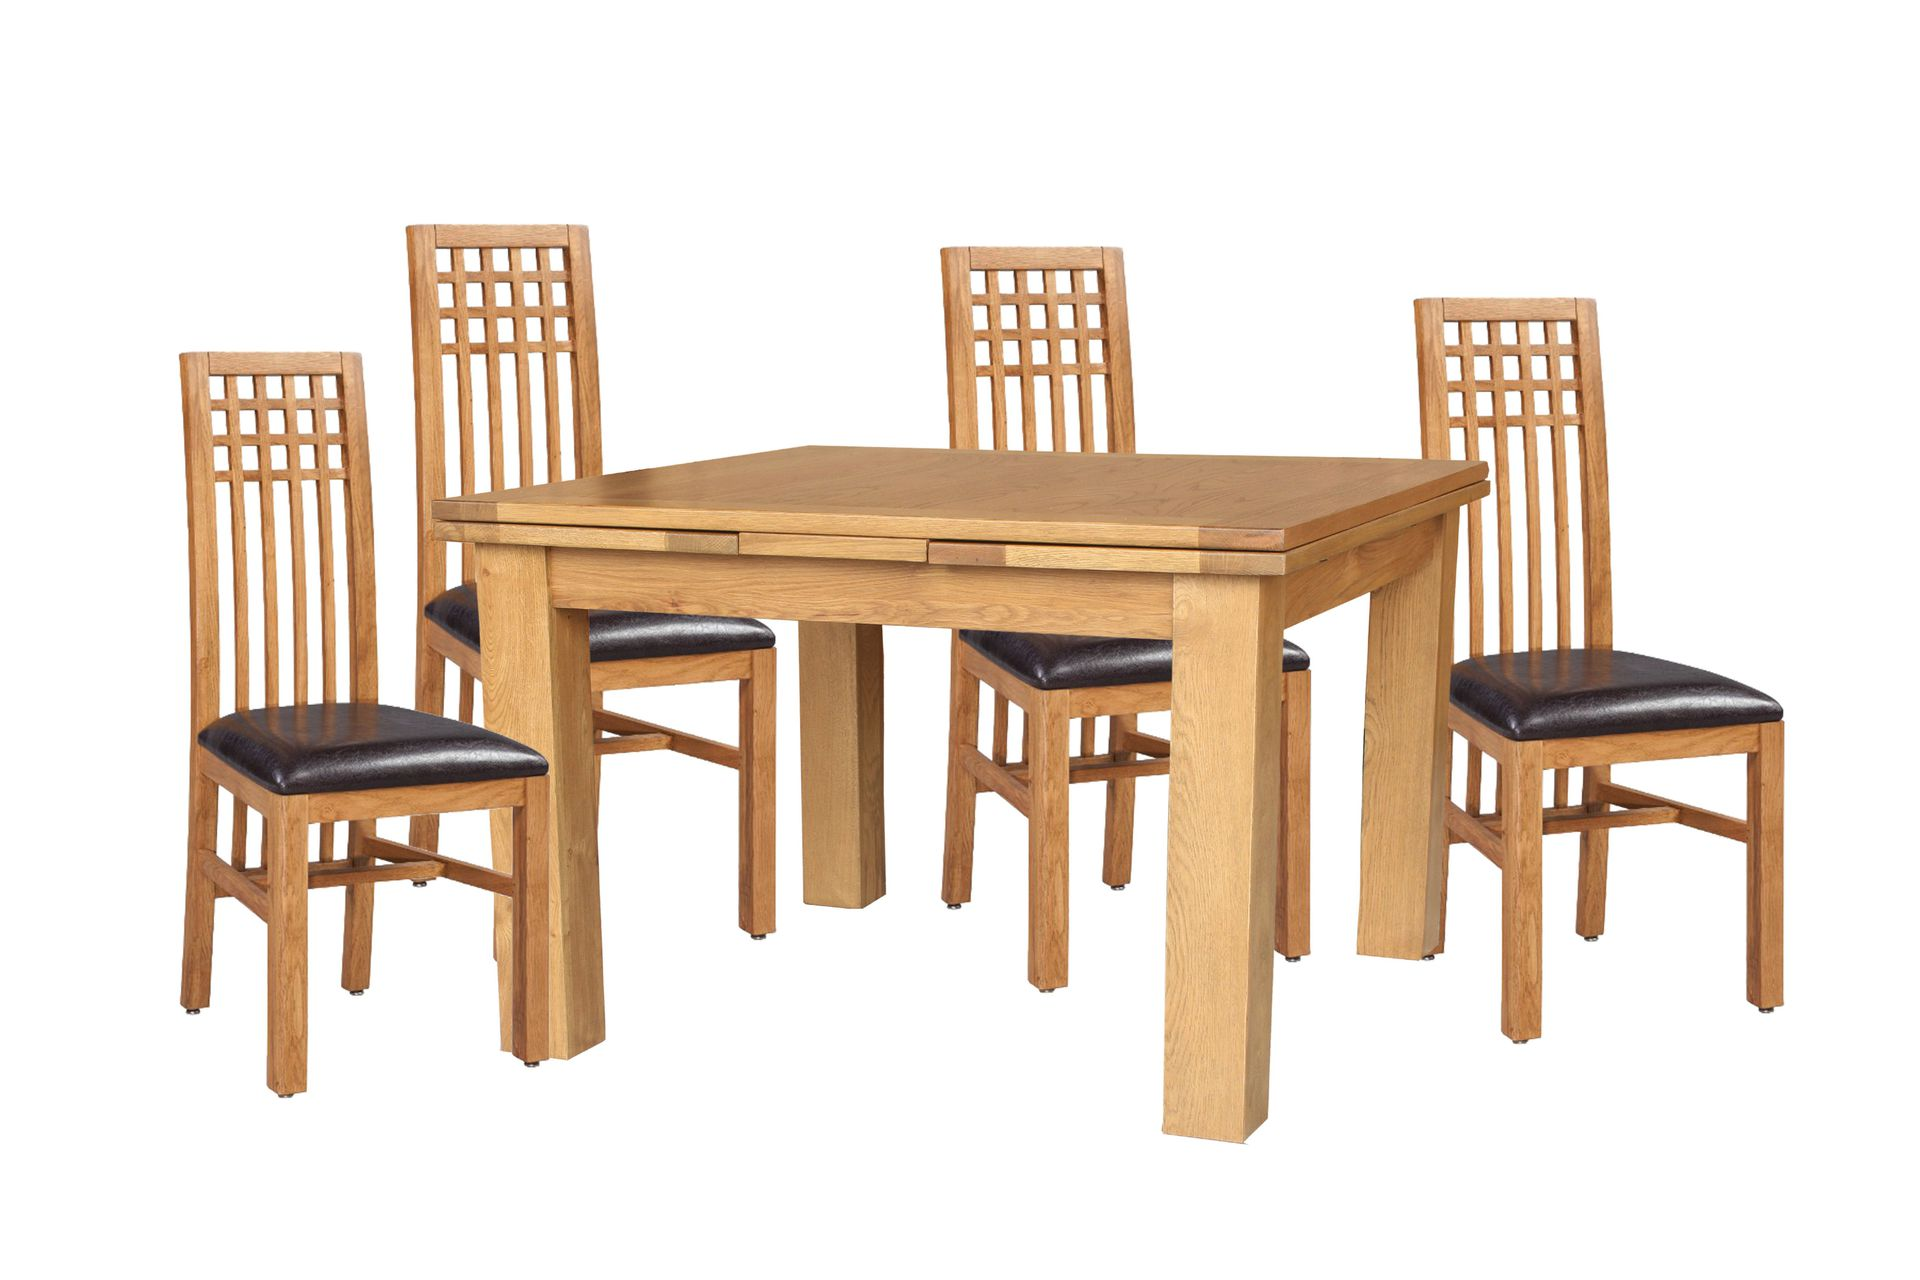 Chair, Upholstered, Table, Dining, Dining Set, Sets, Table